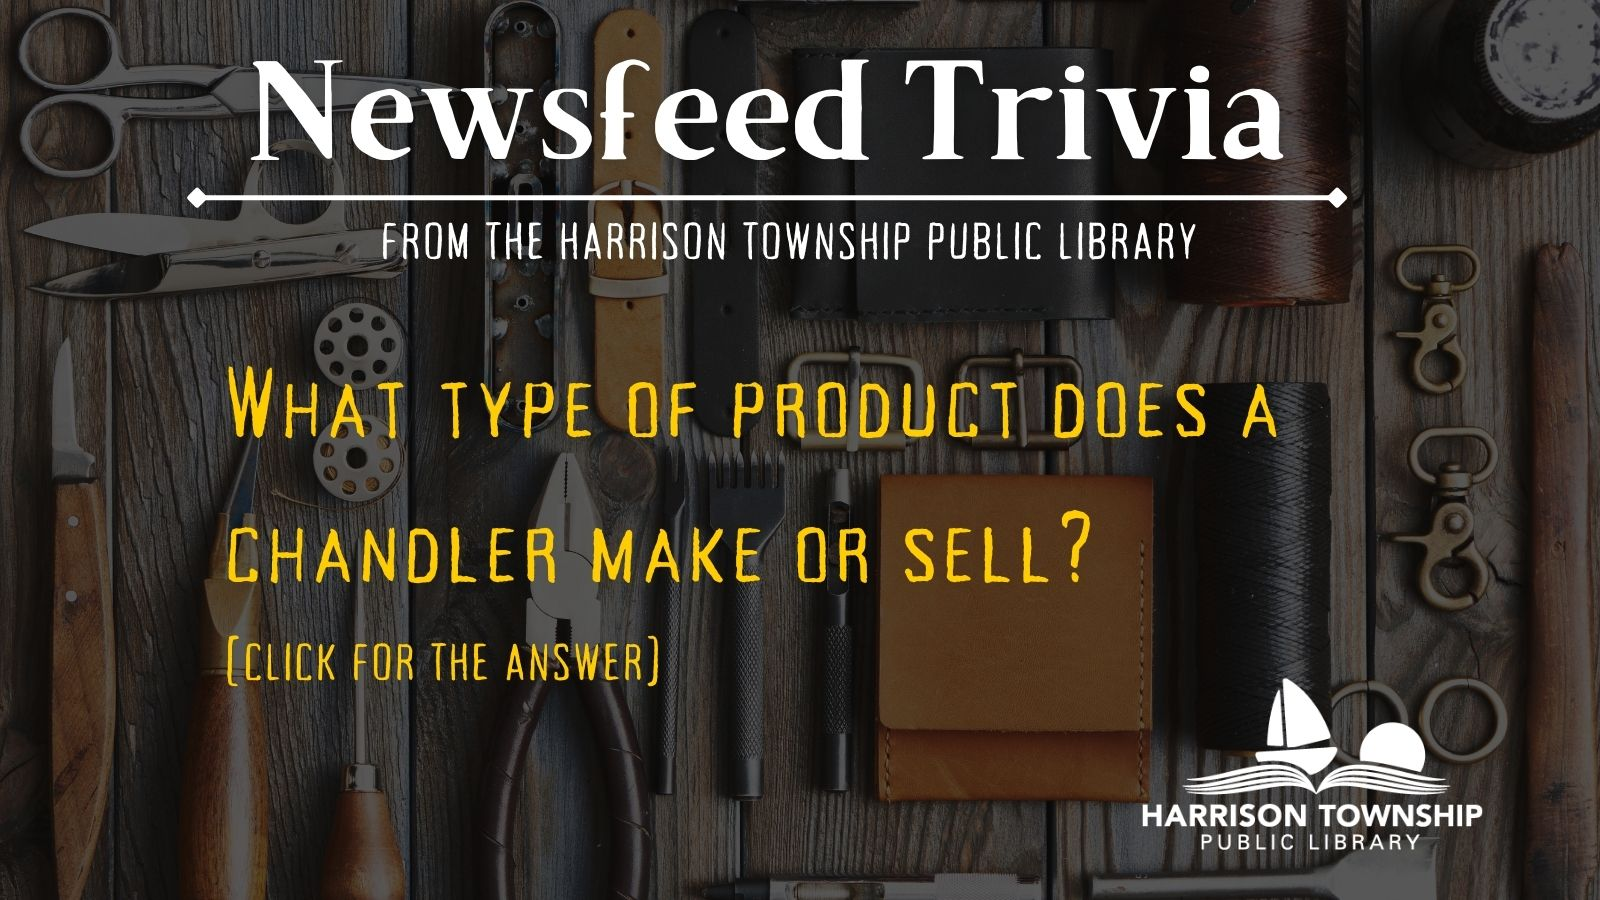 Newsfeed trivia question: What type of product does a chandler make or sell?